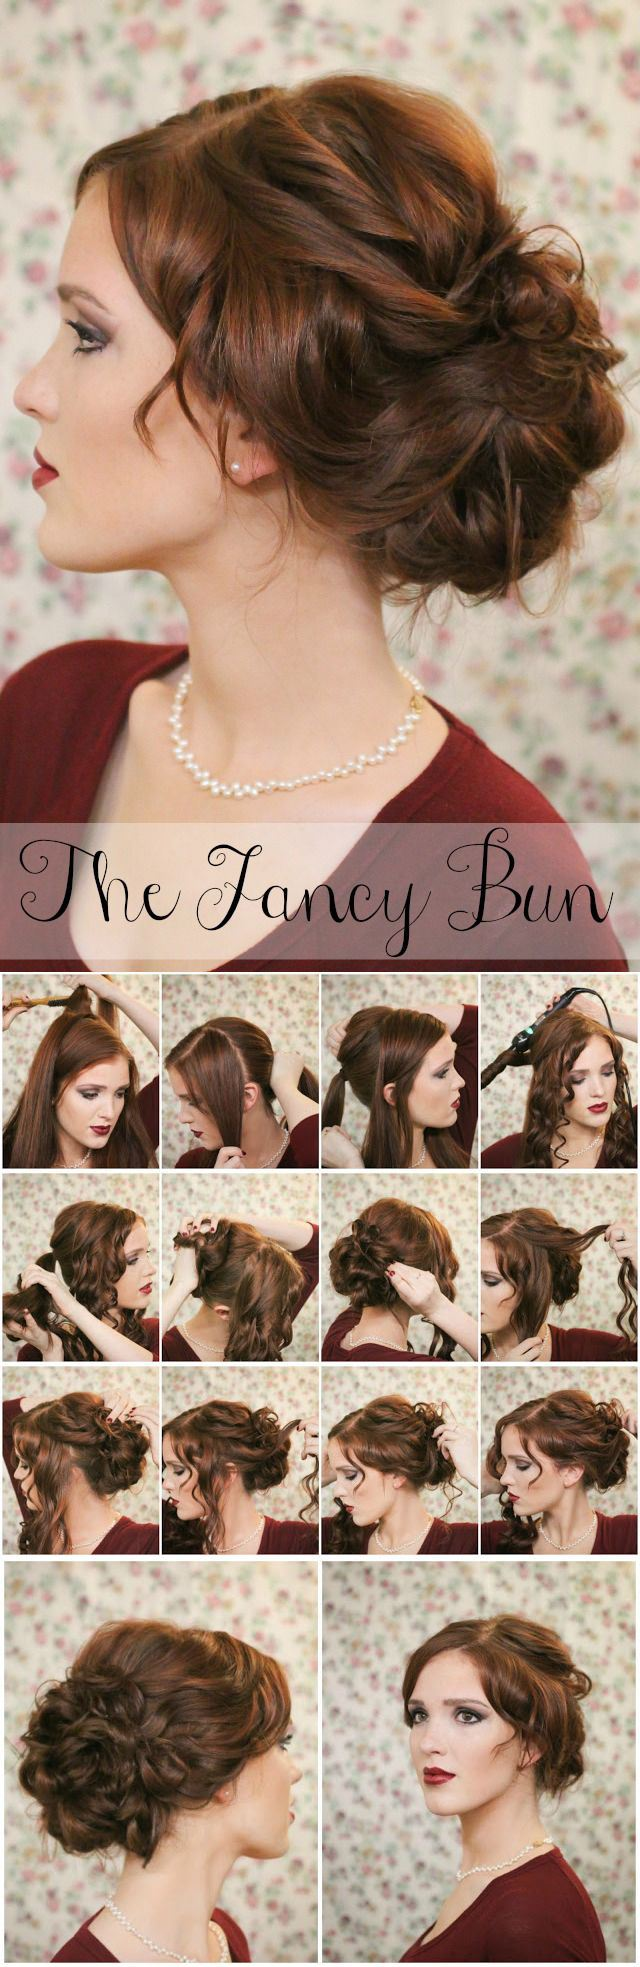 Awesome Top 25 Messy Hair Bun Tutorials Perfect For Those Lazy Mornings Hairstyles For Women Draintrainus